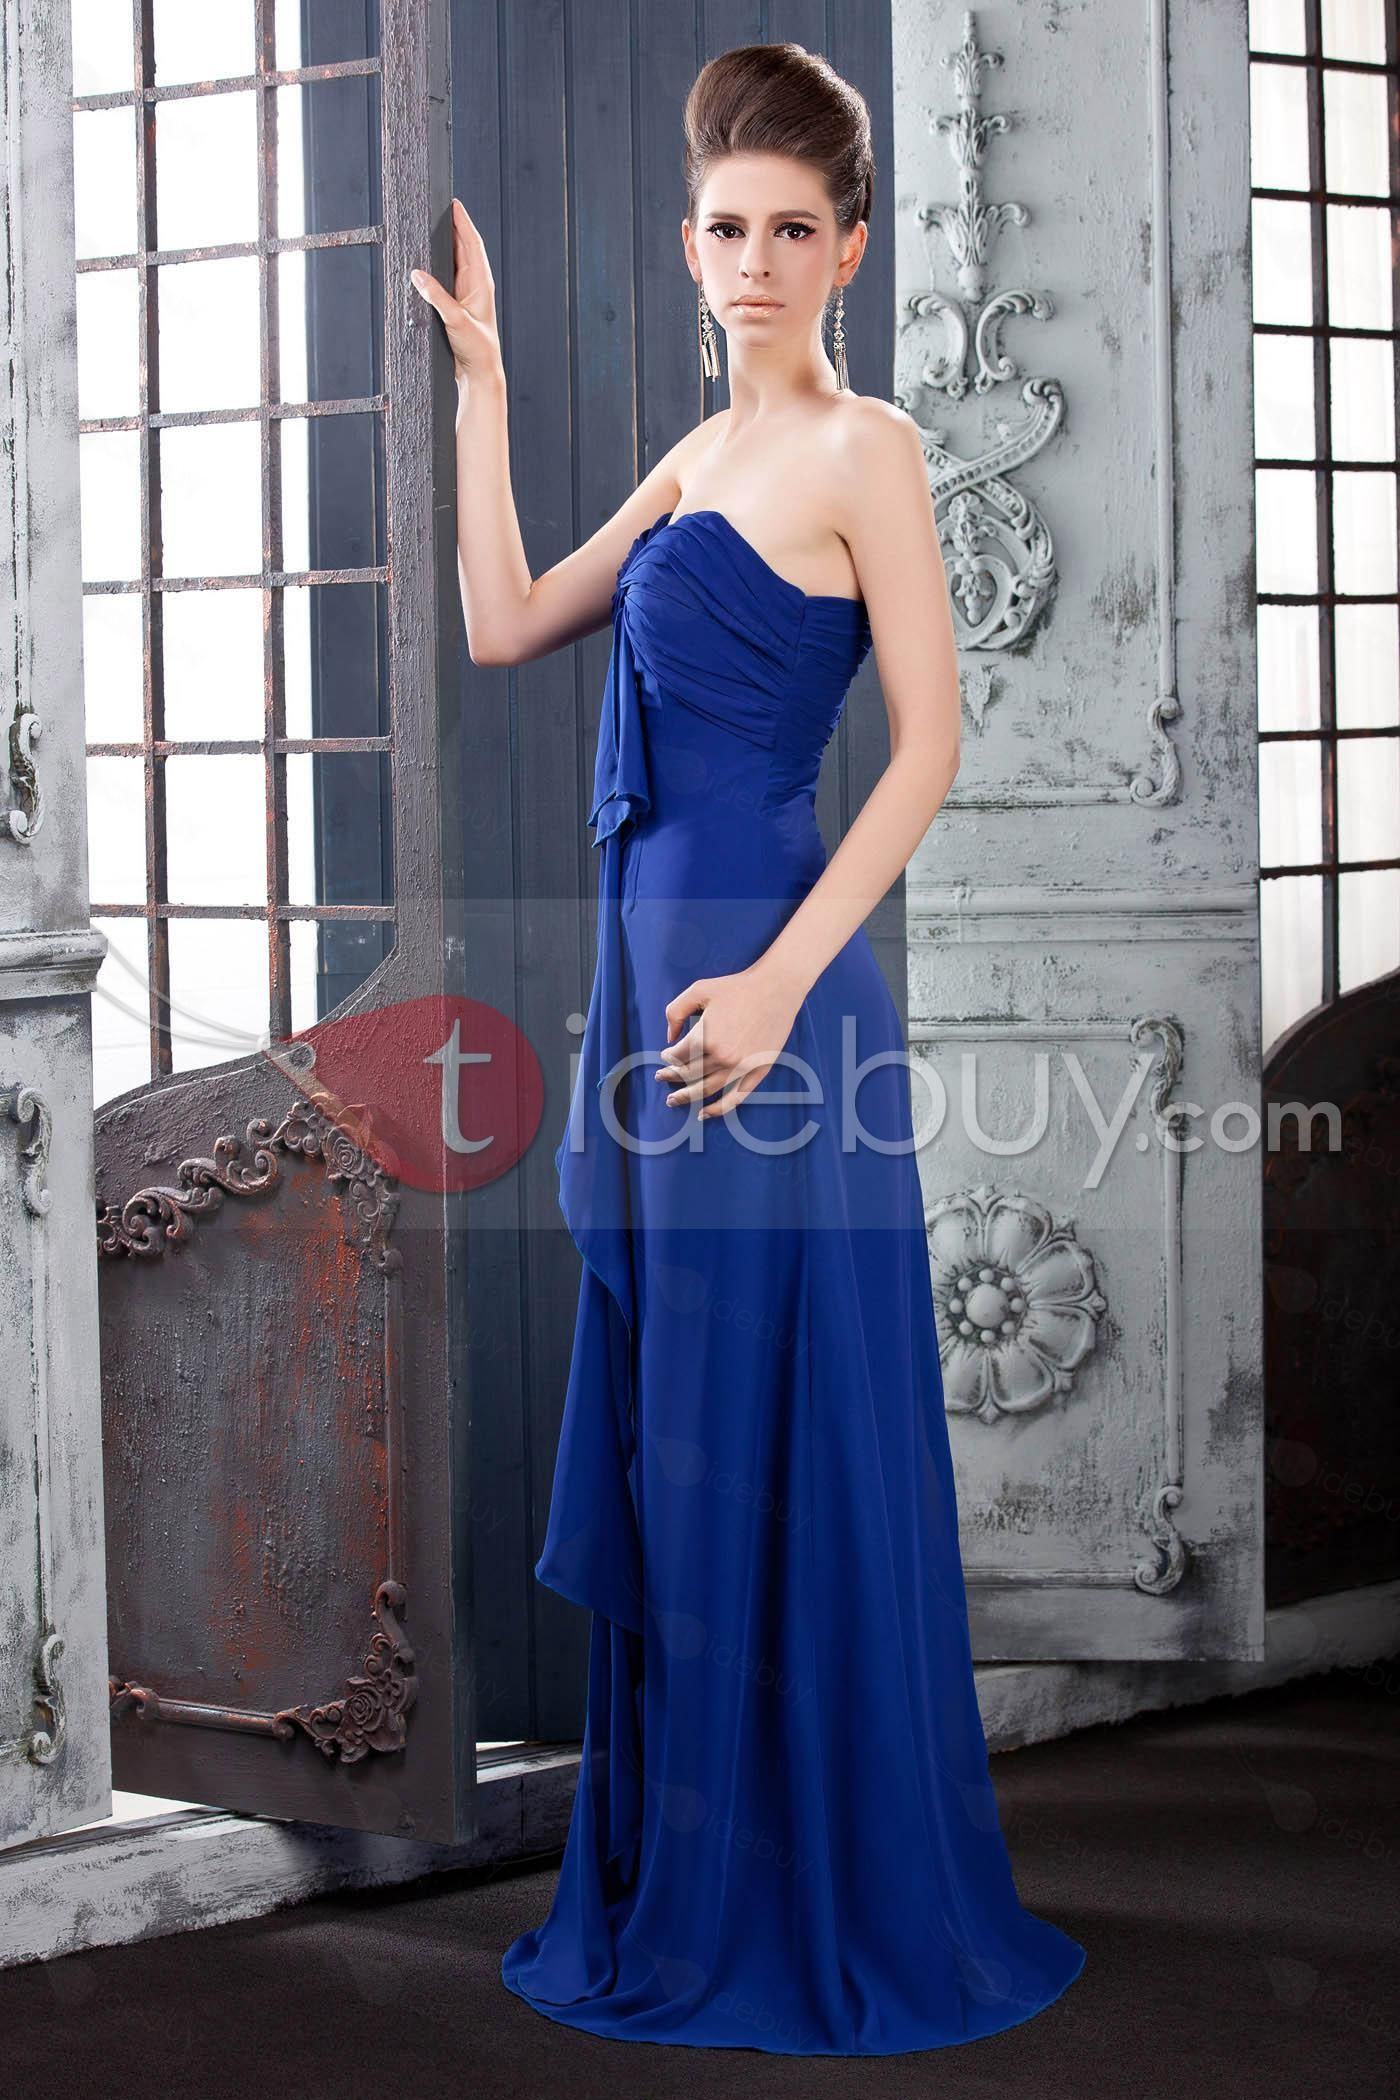 This is beautiful blue party dresses pinterest